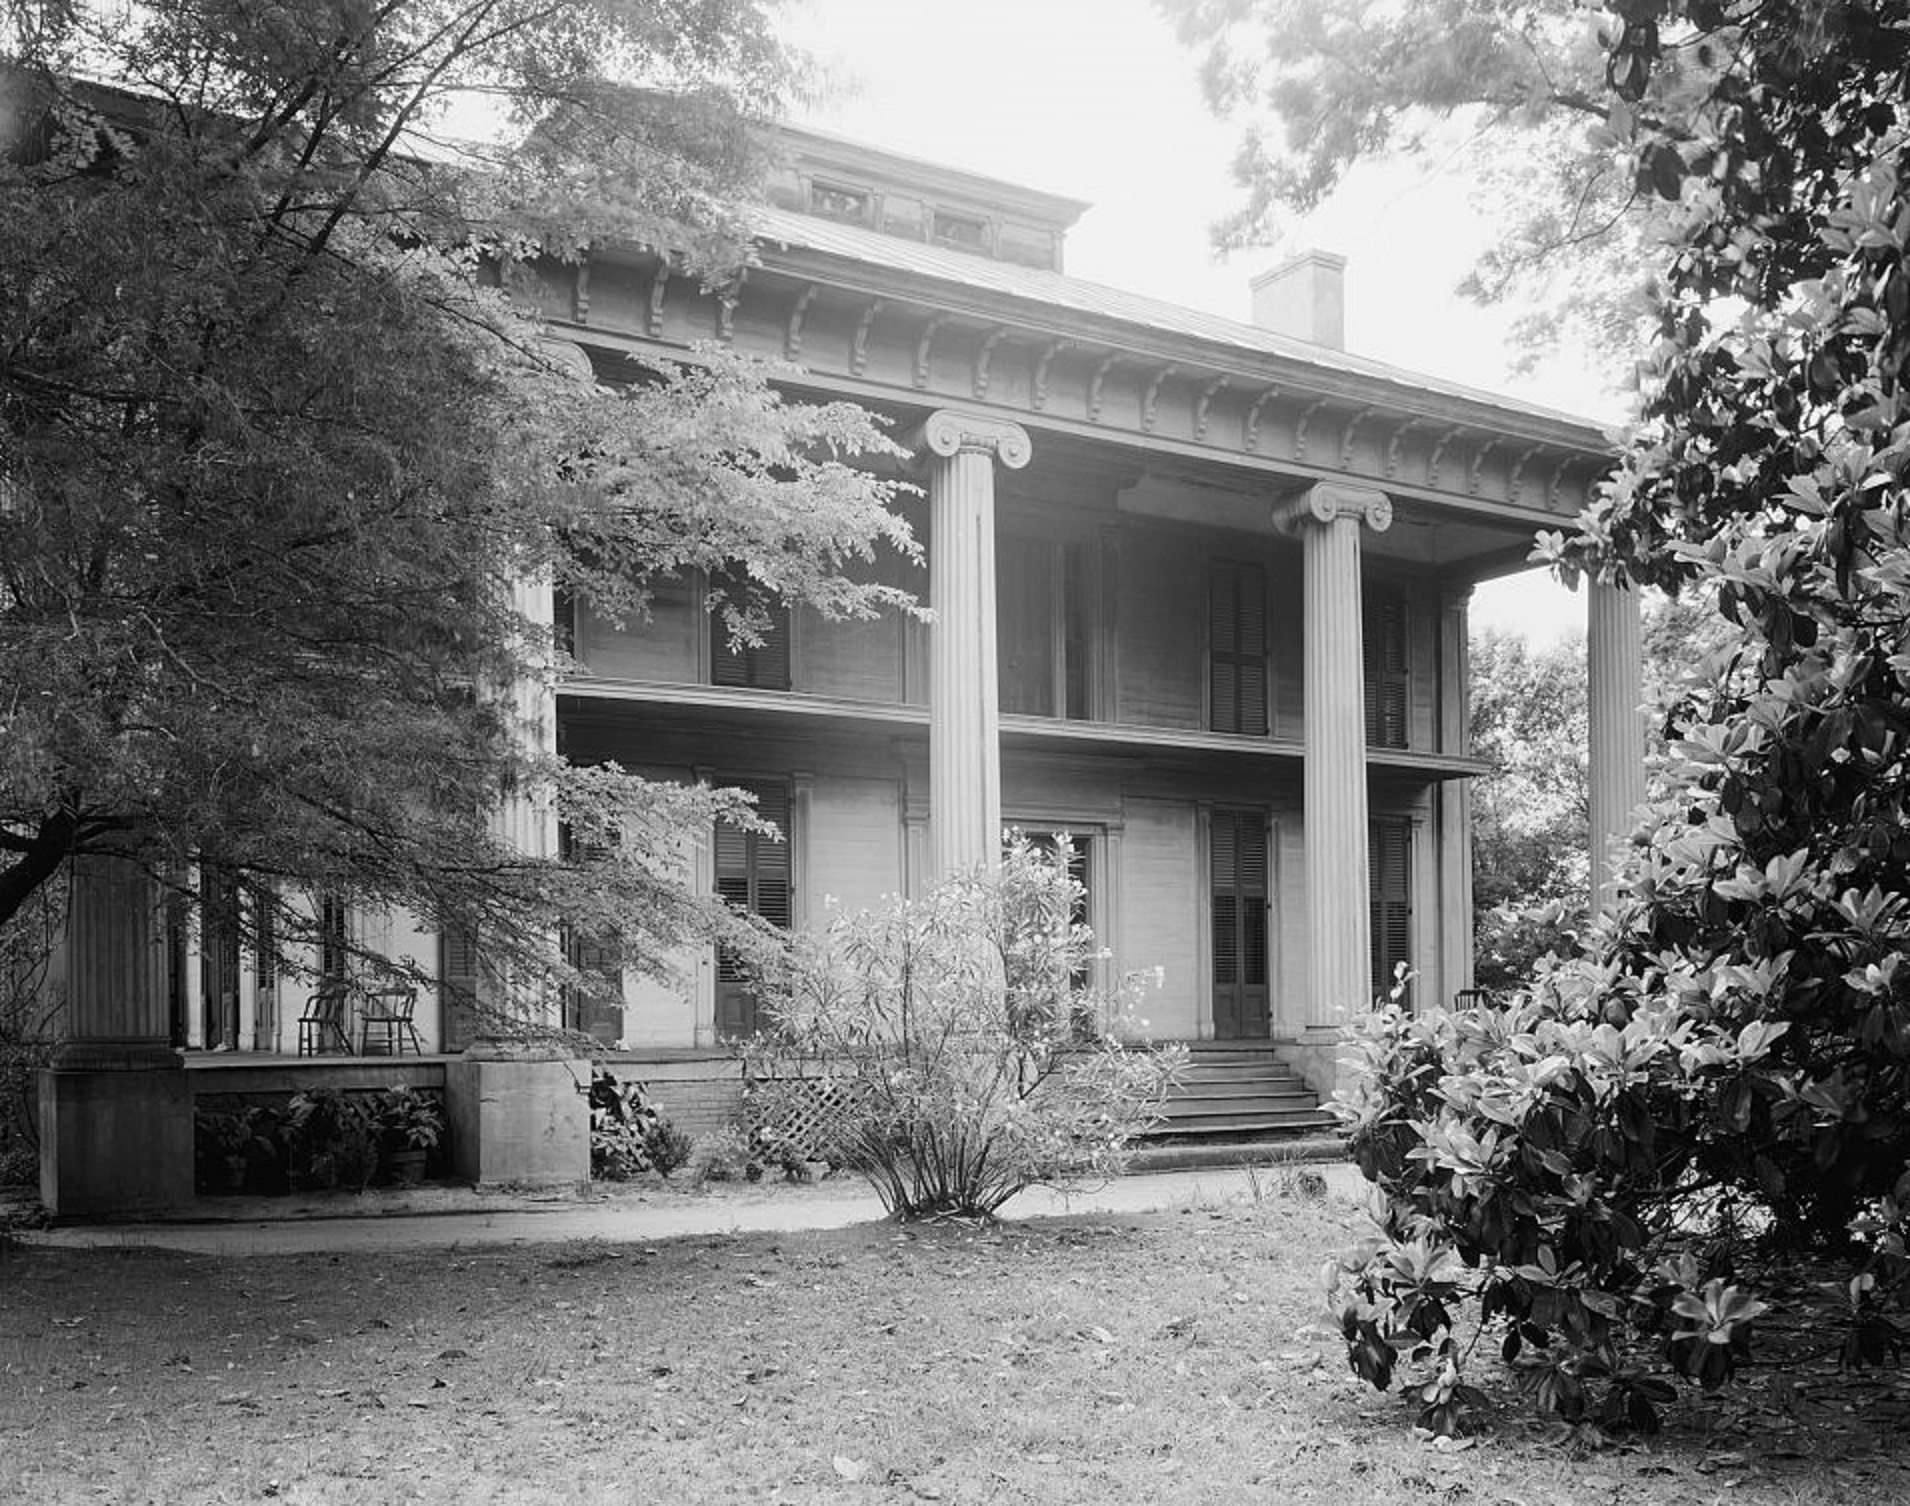 Kirksey house in Eutaw, Alabama 1939